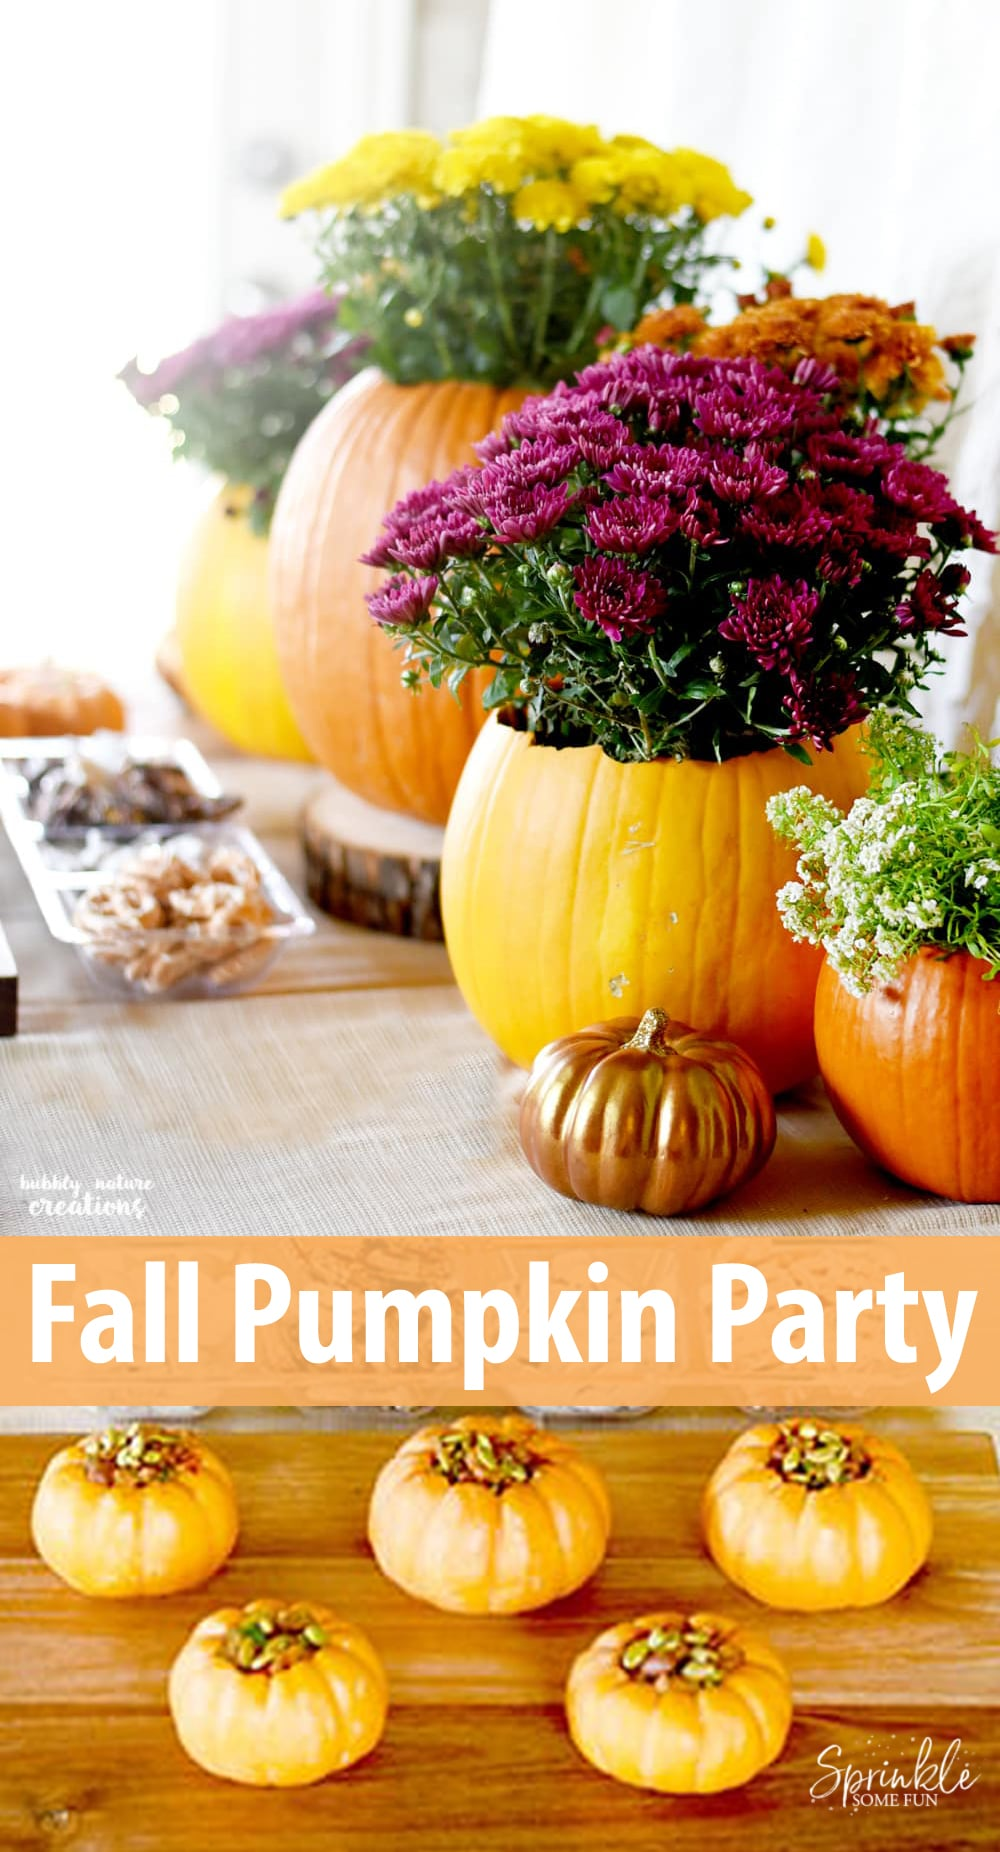 My favorite Fall celebrations involvecarving, cooking and baking with pumpkinsso Ithrew thisFall Pumpkin Party to celebrate the Fall season. #pumpkin #fall #party #falldecor #mumkin #pumpkindecor #pumpkinspice #flowers